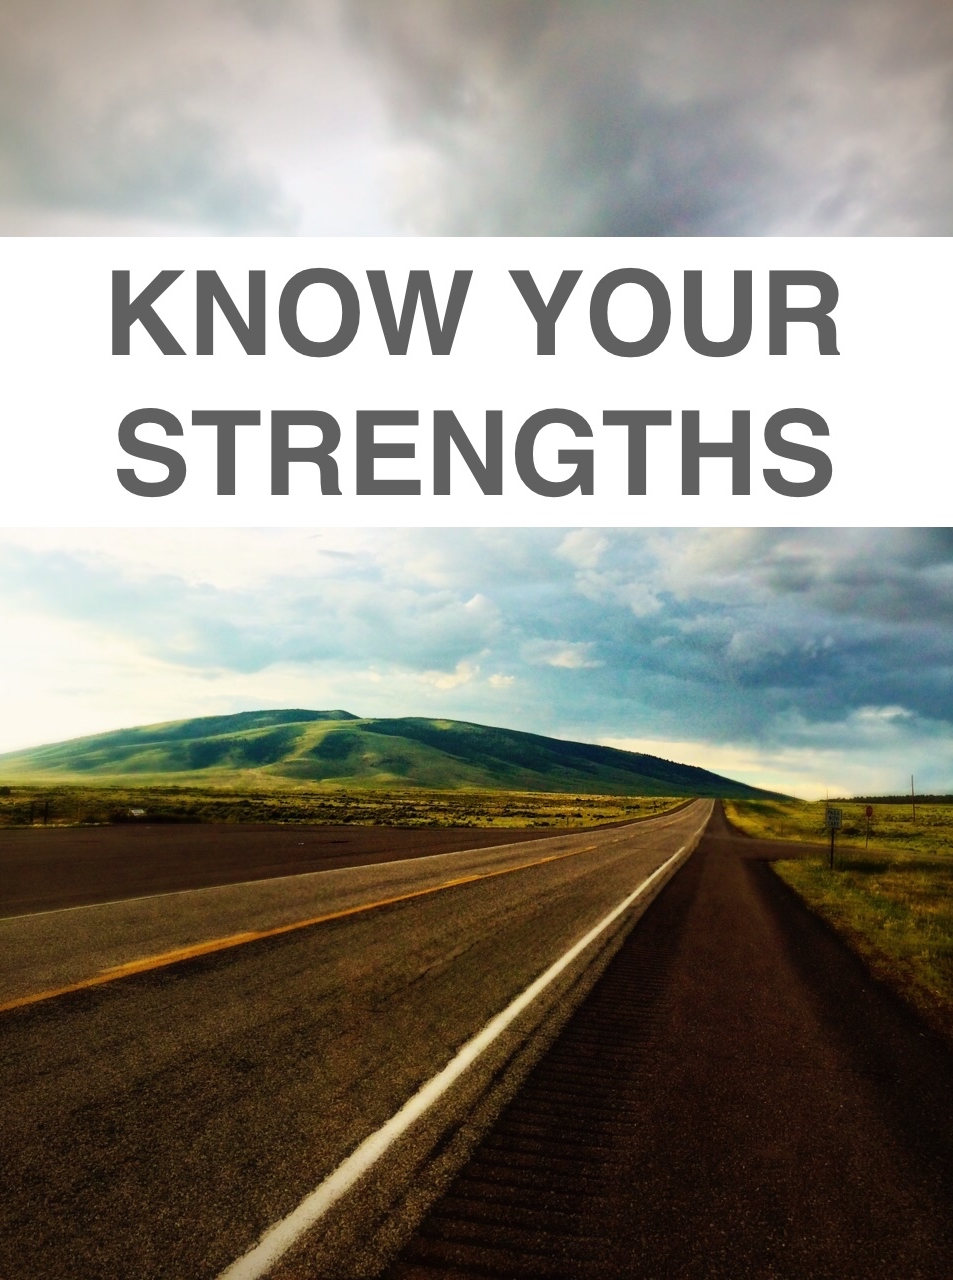 Strengths image.png